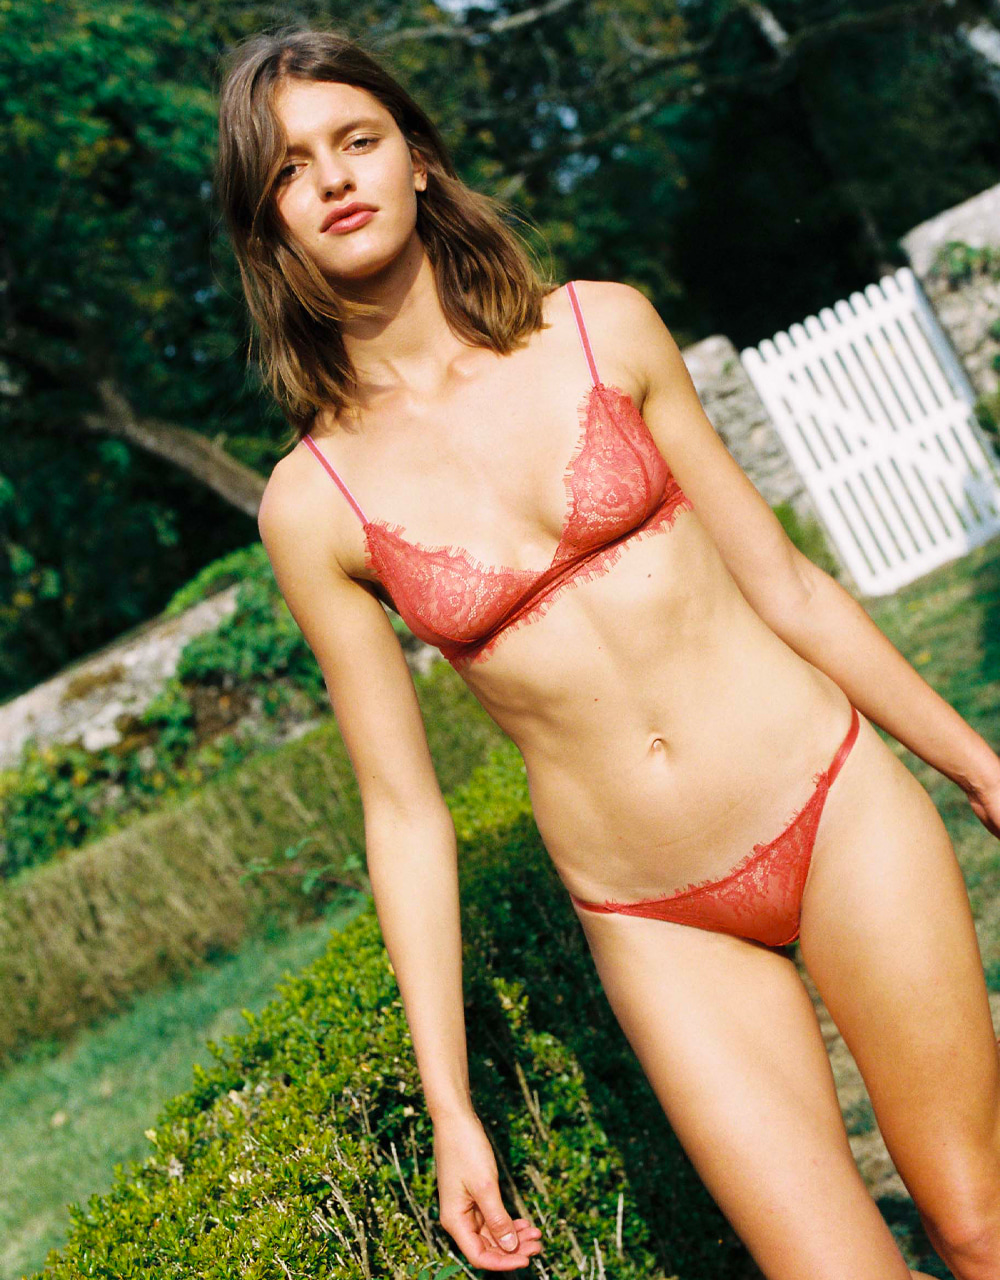 lingerie bra without underwires Charlie B. Good Tan 29 € Girls In Paris photo 1